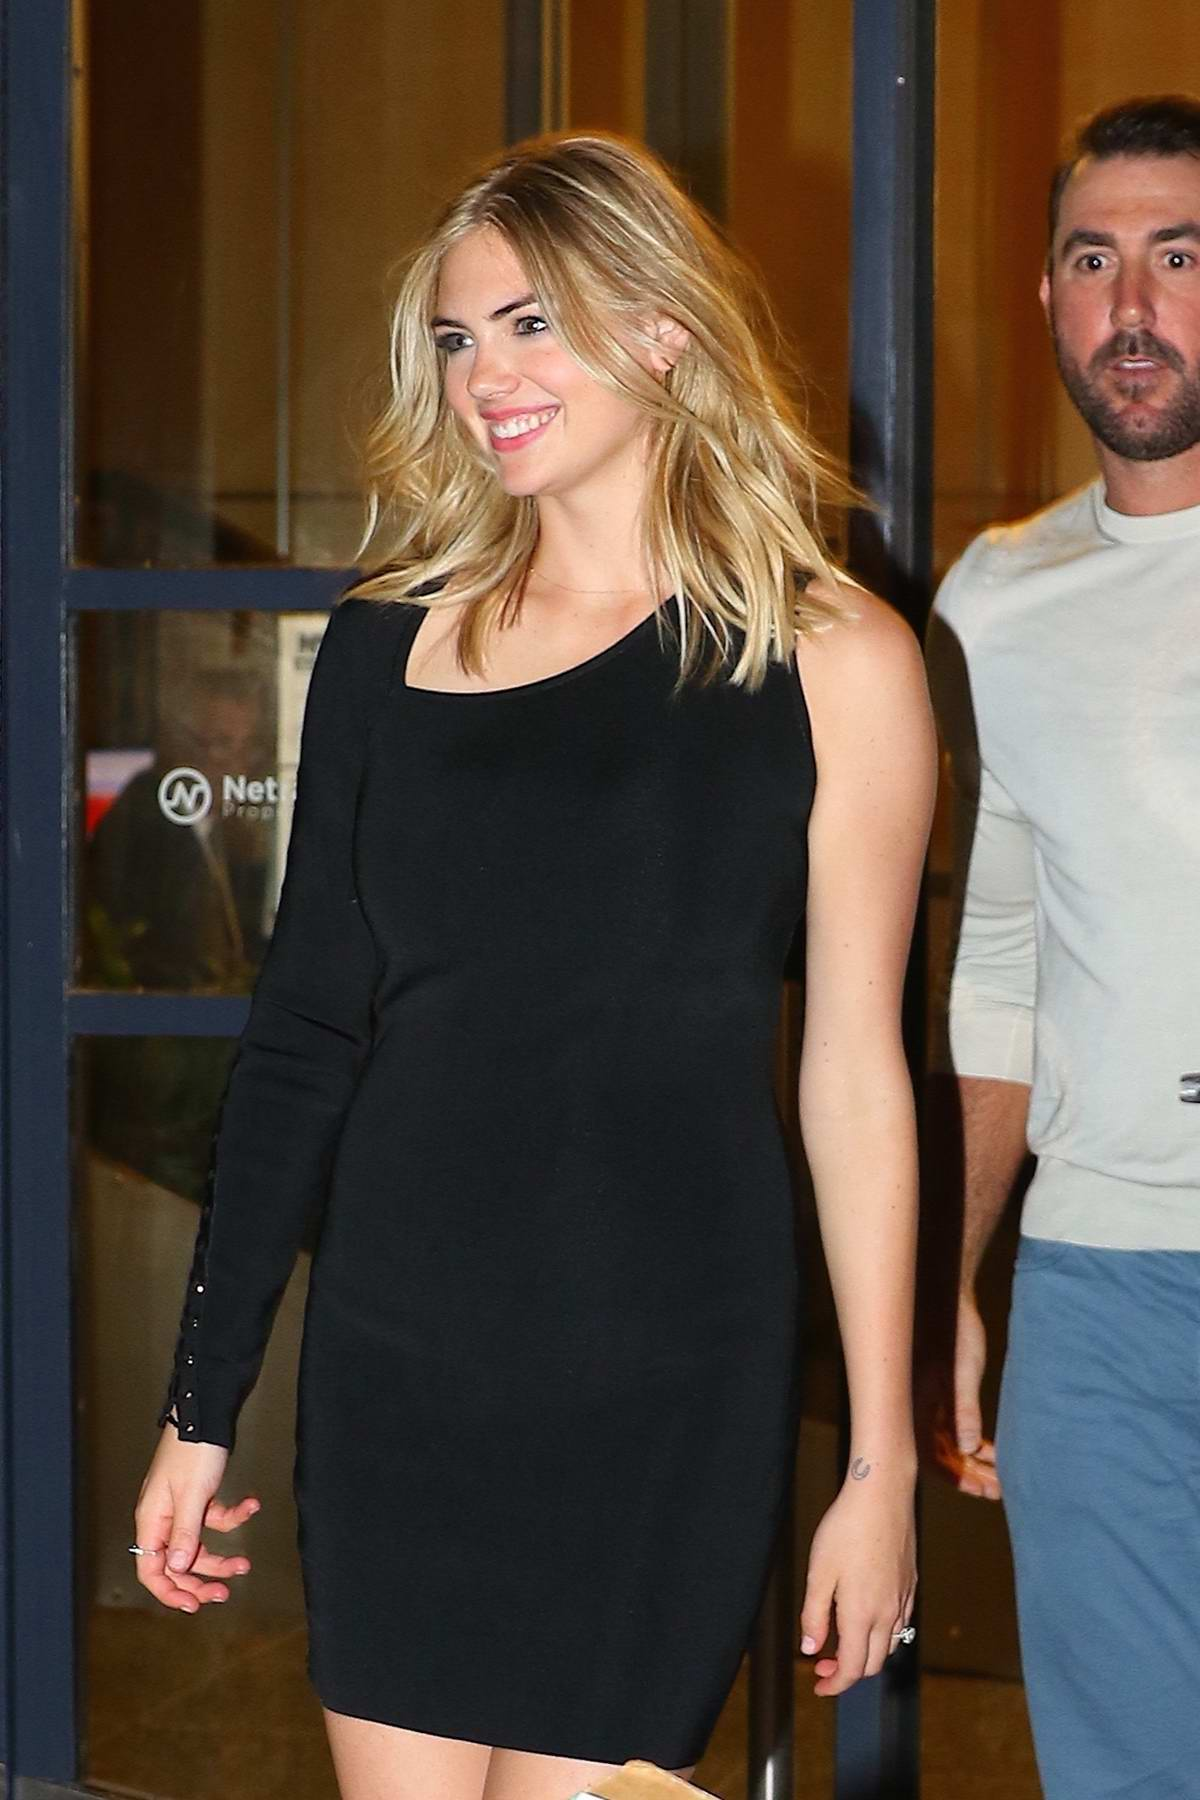 Kate Upton and Justin Verlander heads out to dinner at Catch after appearing on 'Watch What Happens Live' in New York